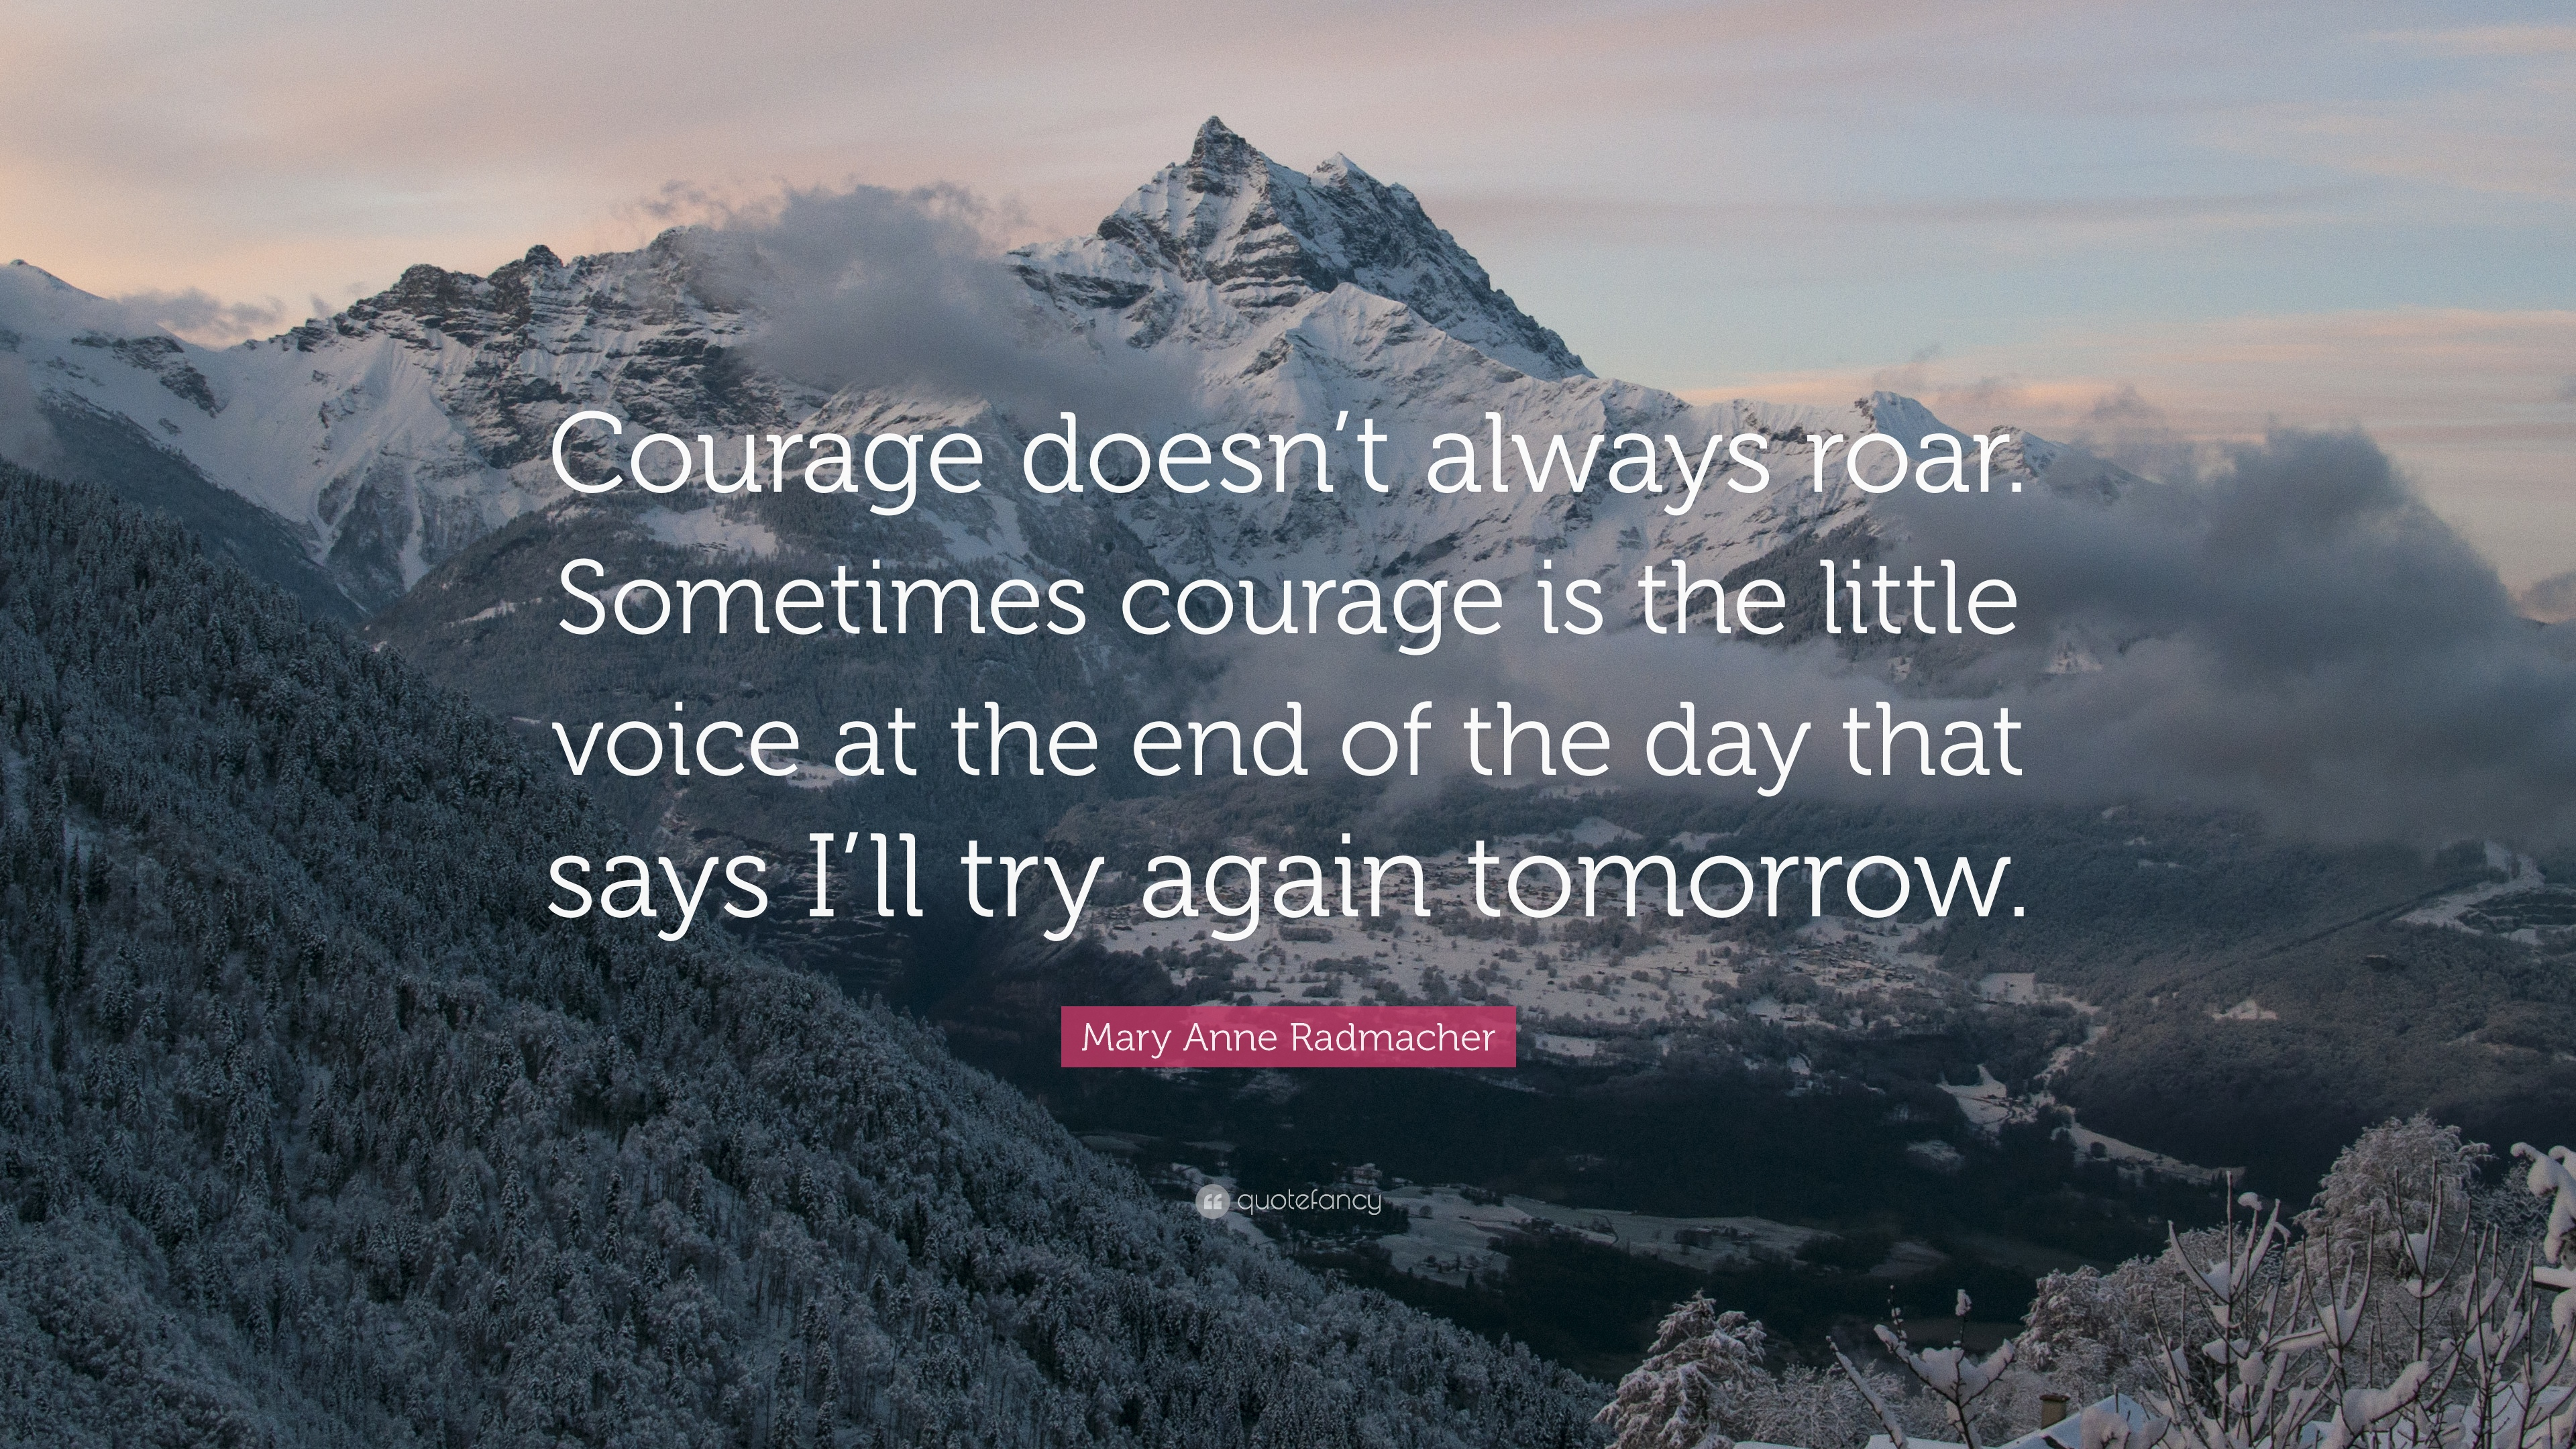 Mary Anne Radmacher Quote Courage Doesn T Always Roar Sometimes Courage Is The Little Voice